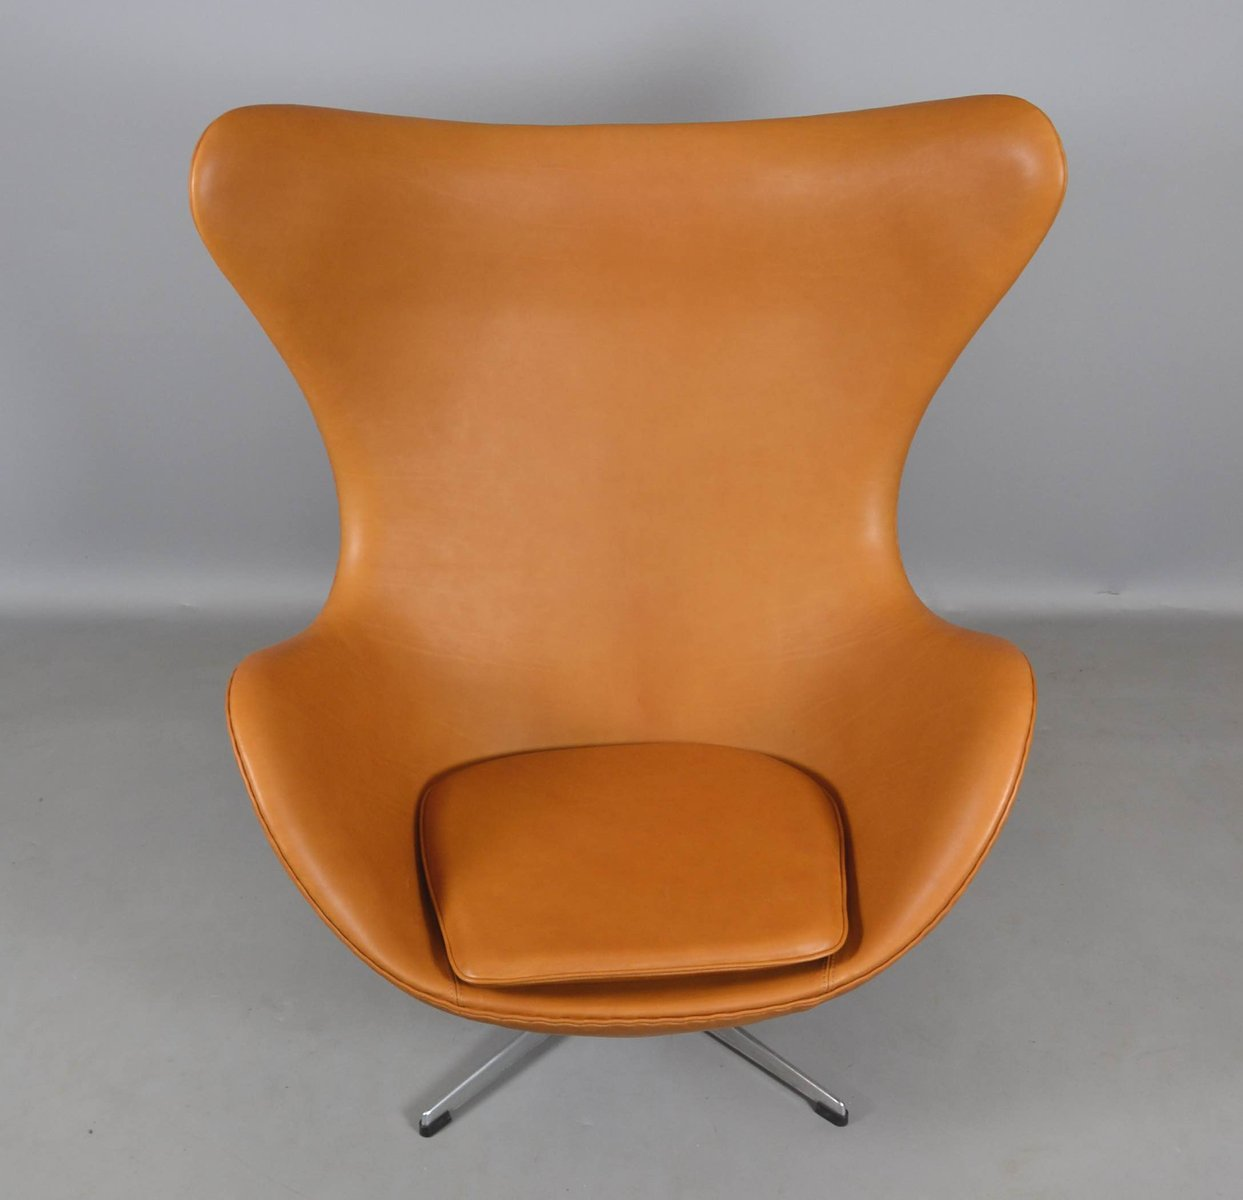 Excellent Excellent Leder Egg Chair Von Arne Jacobsen Fr Fritz Hansen Er  Bei Pamono Kaufen With Egg Chair Kaufen With Egg Chair Leder With Egg Chair  Kaufen